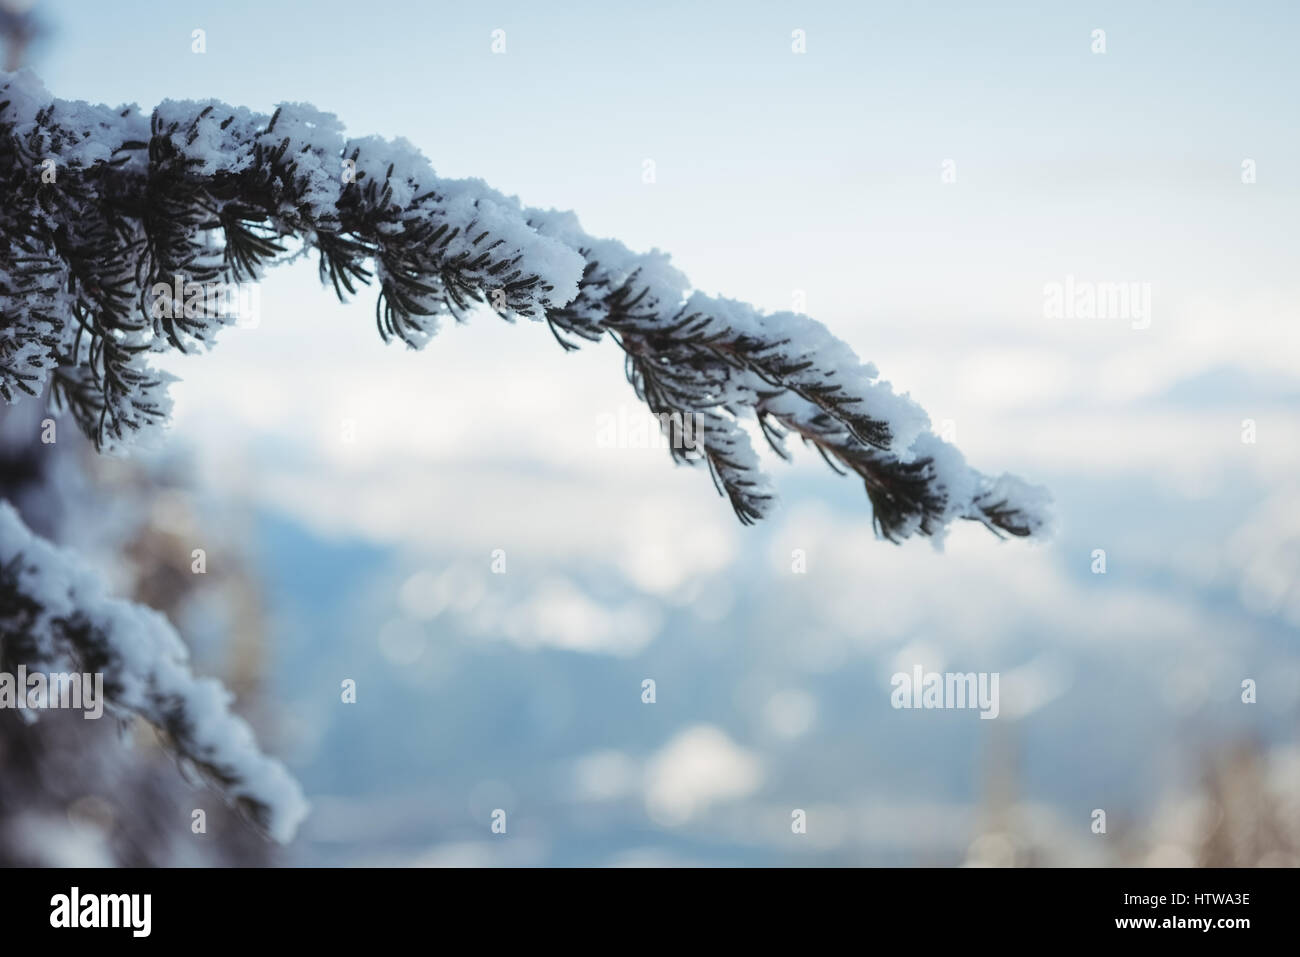 Close up of snow covered pine tree branch - Stock Image